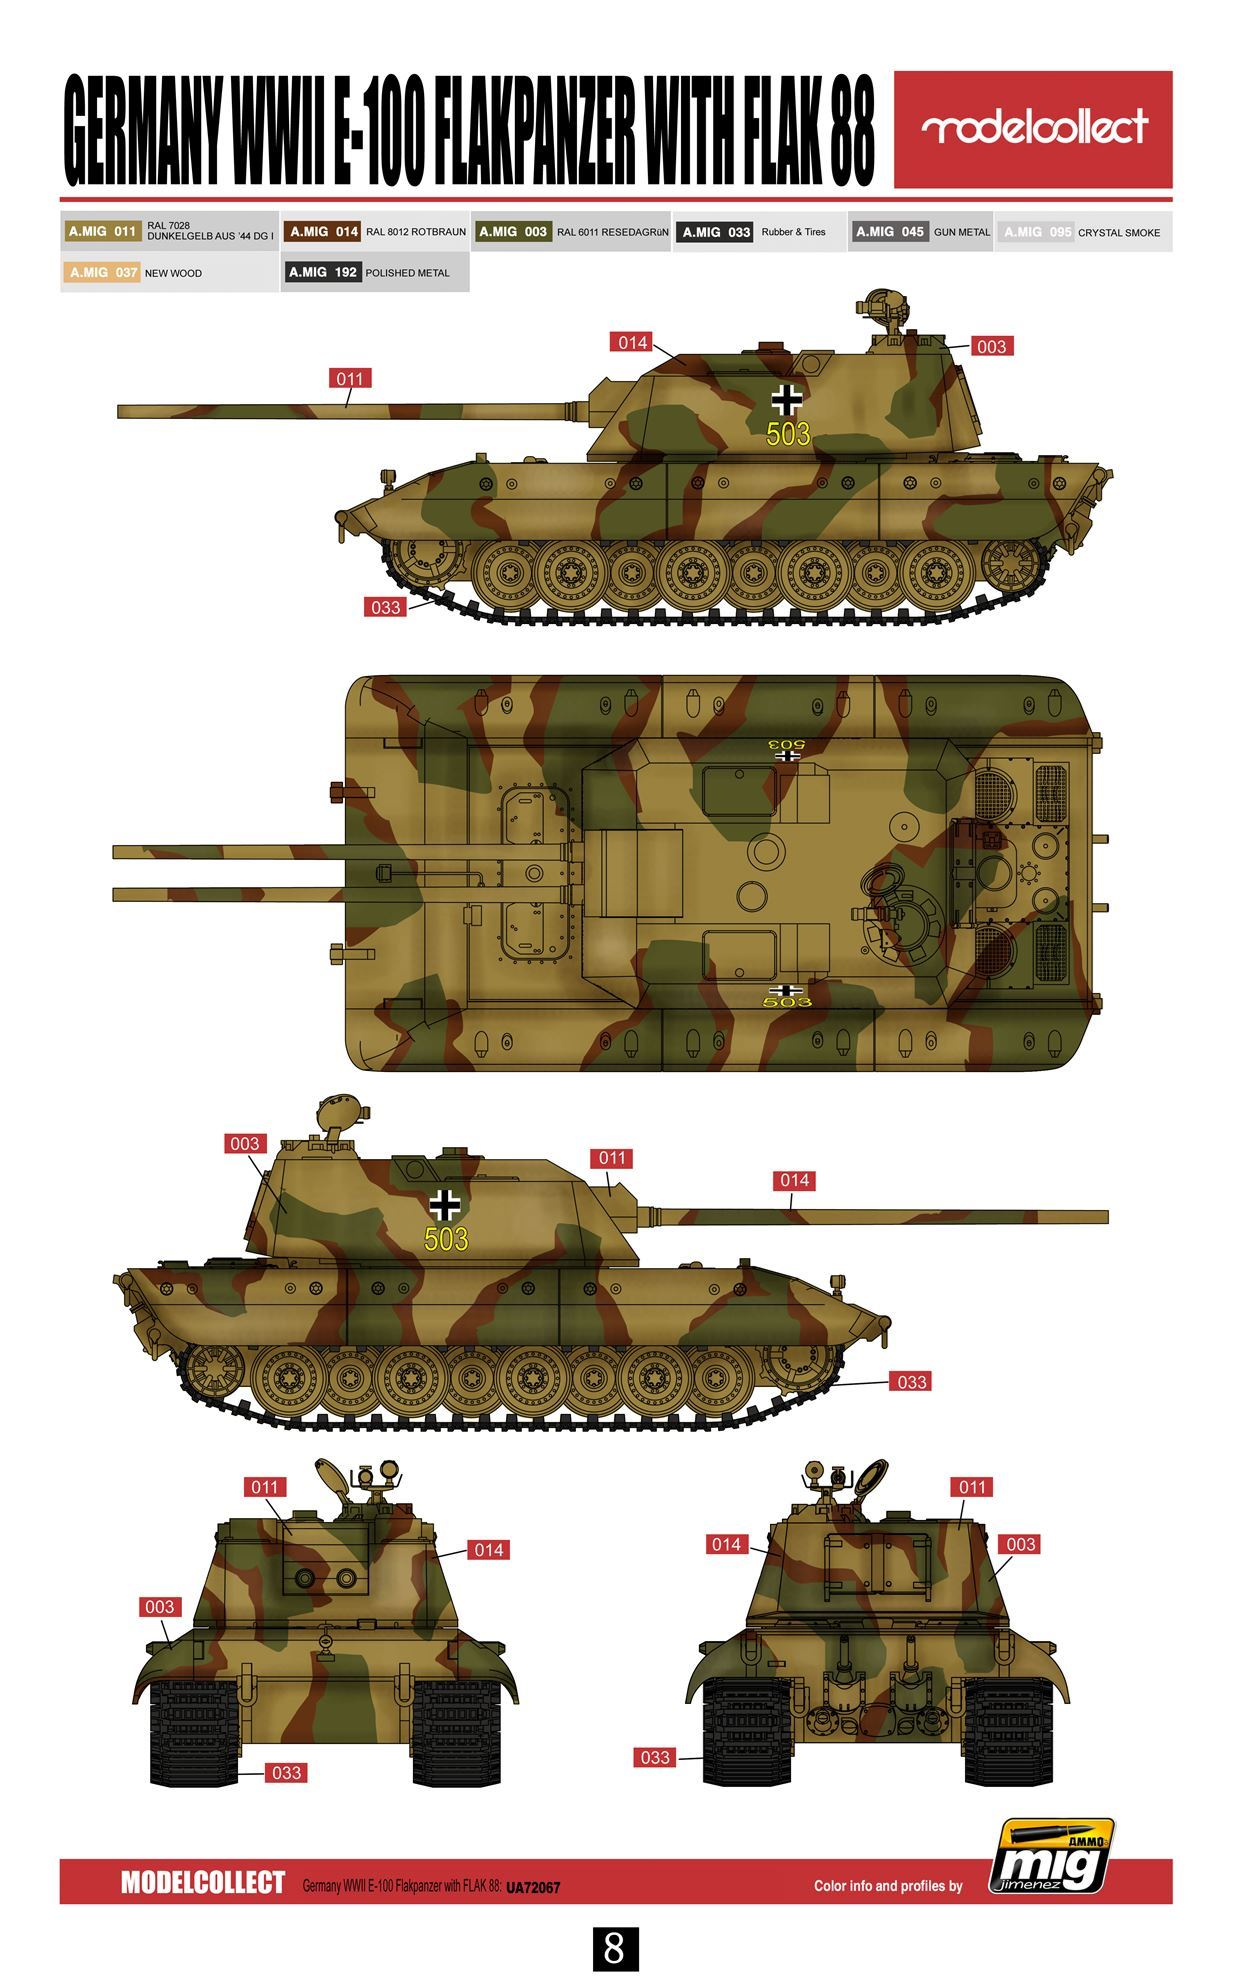 Modelcollect. Germany WWII E-100 Flakpanzer with flak 88